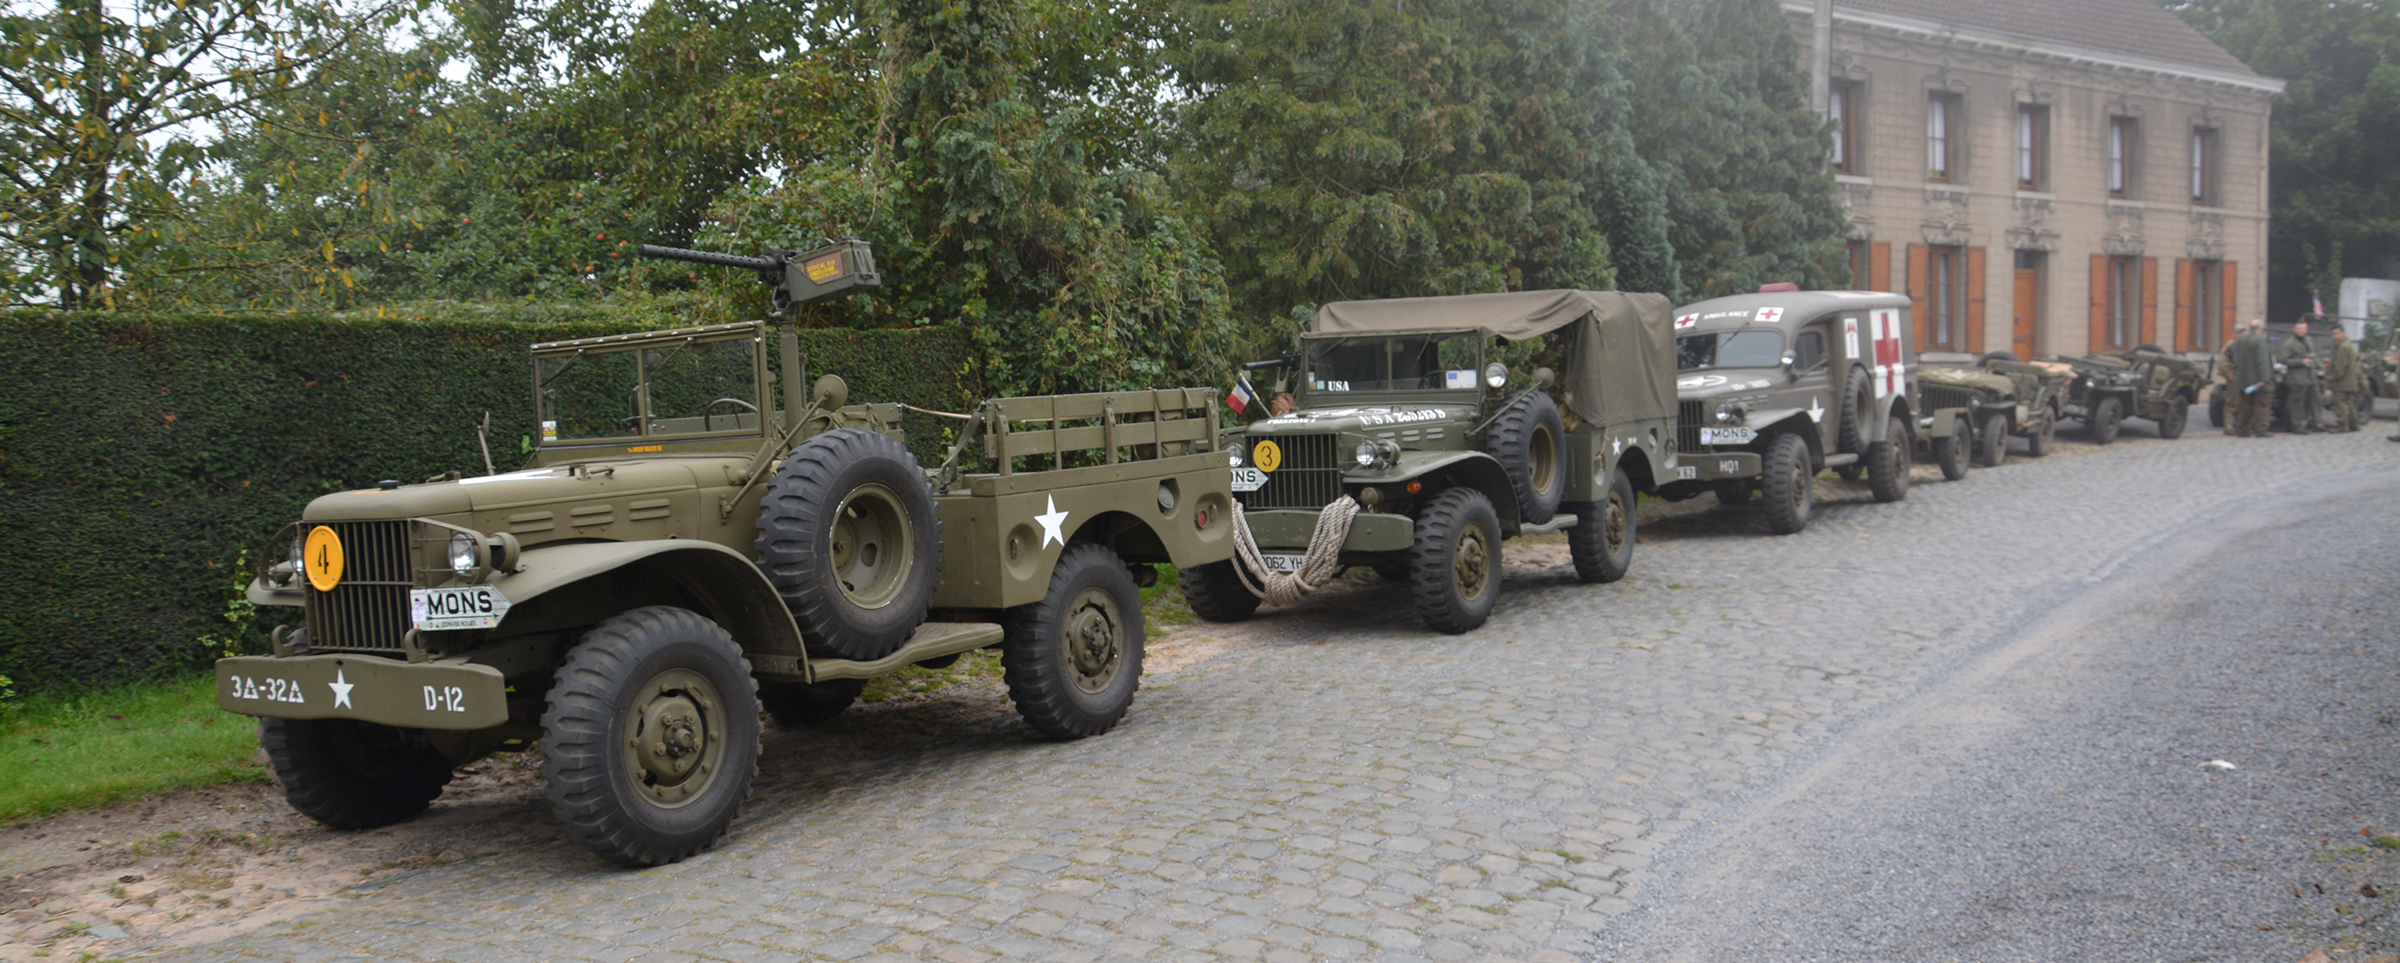 About my Dodge 3 4 ton Weapon Carrier homepage WW2 Dodge 3 4